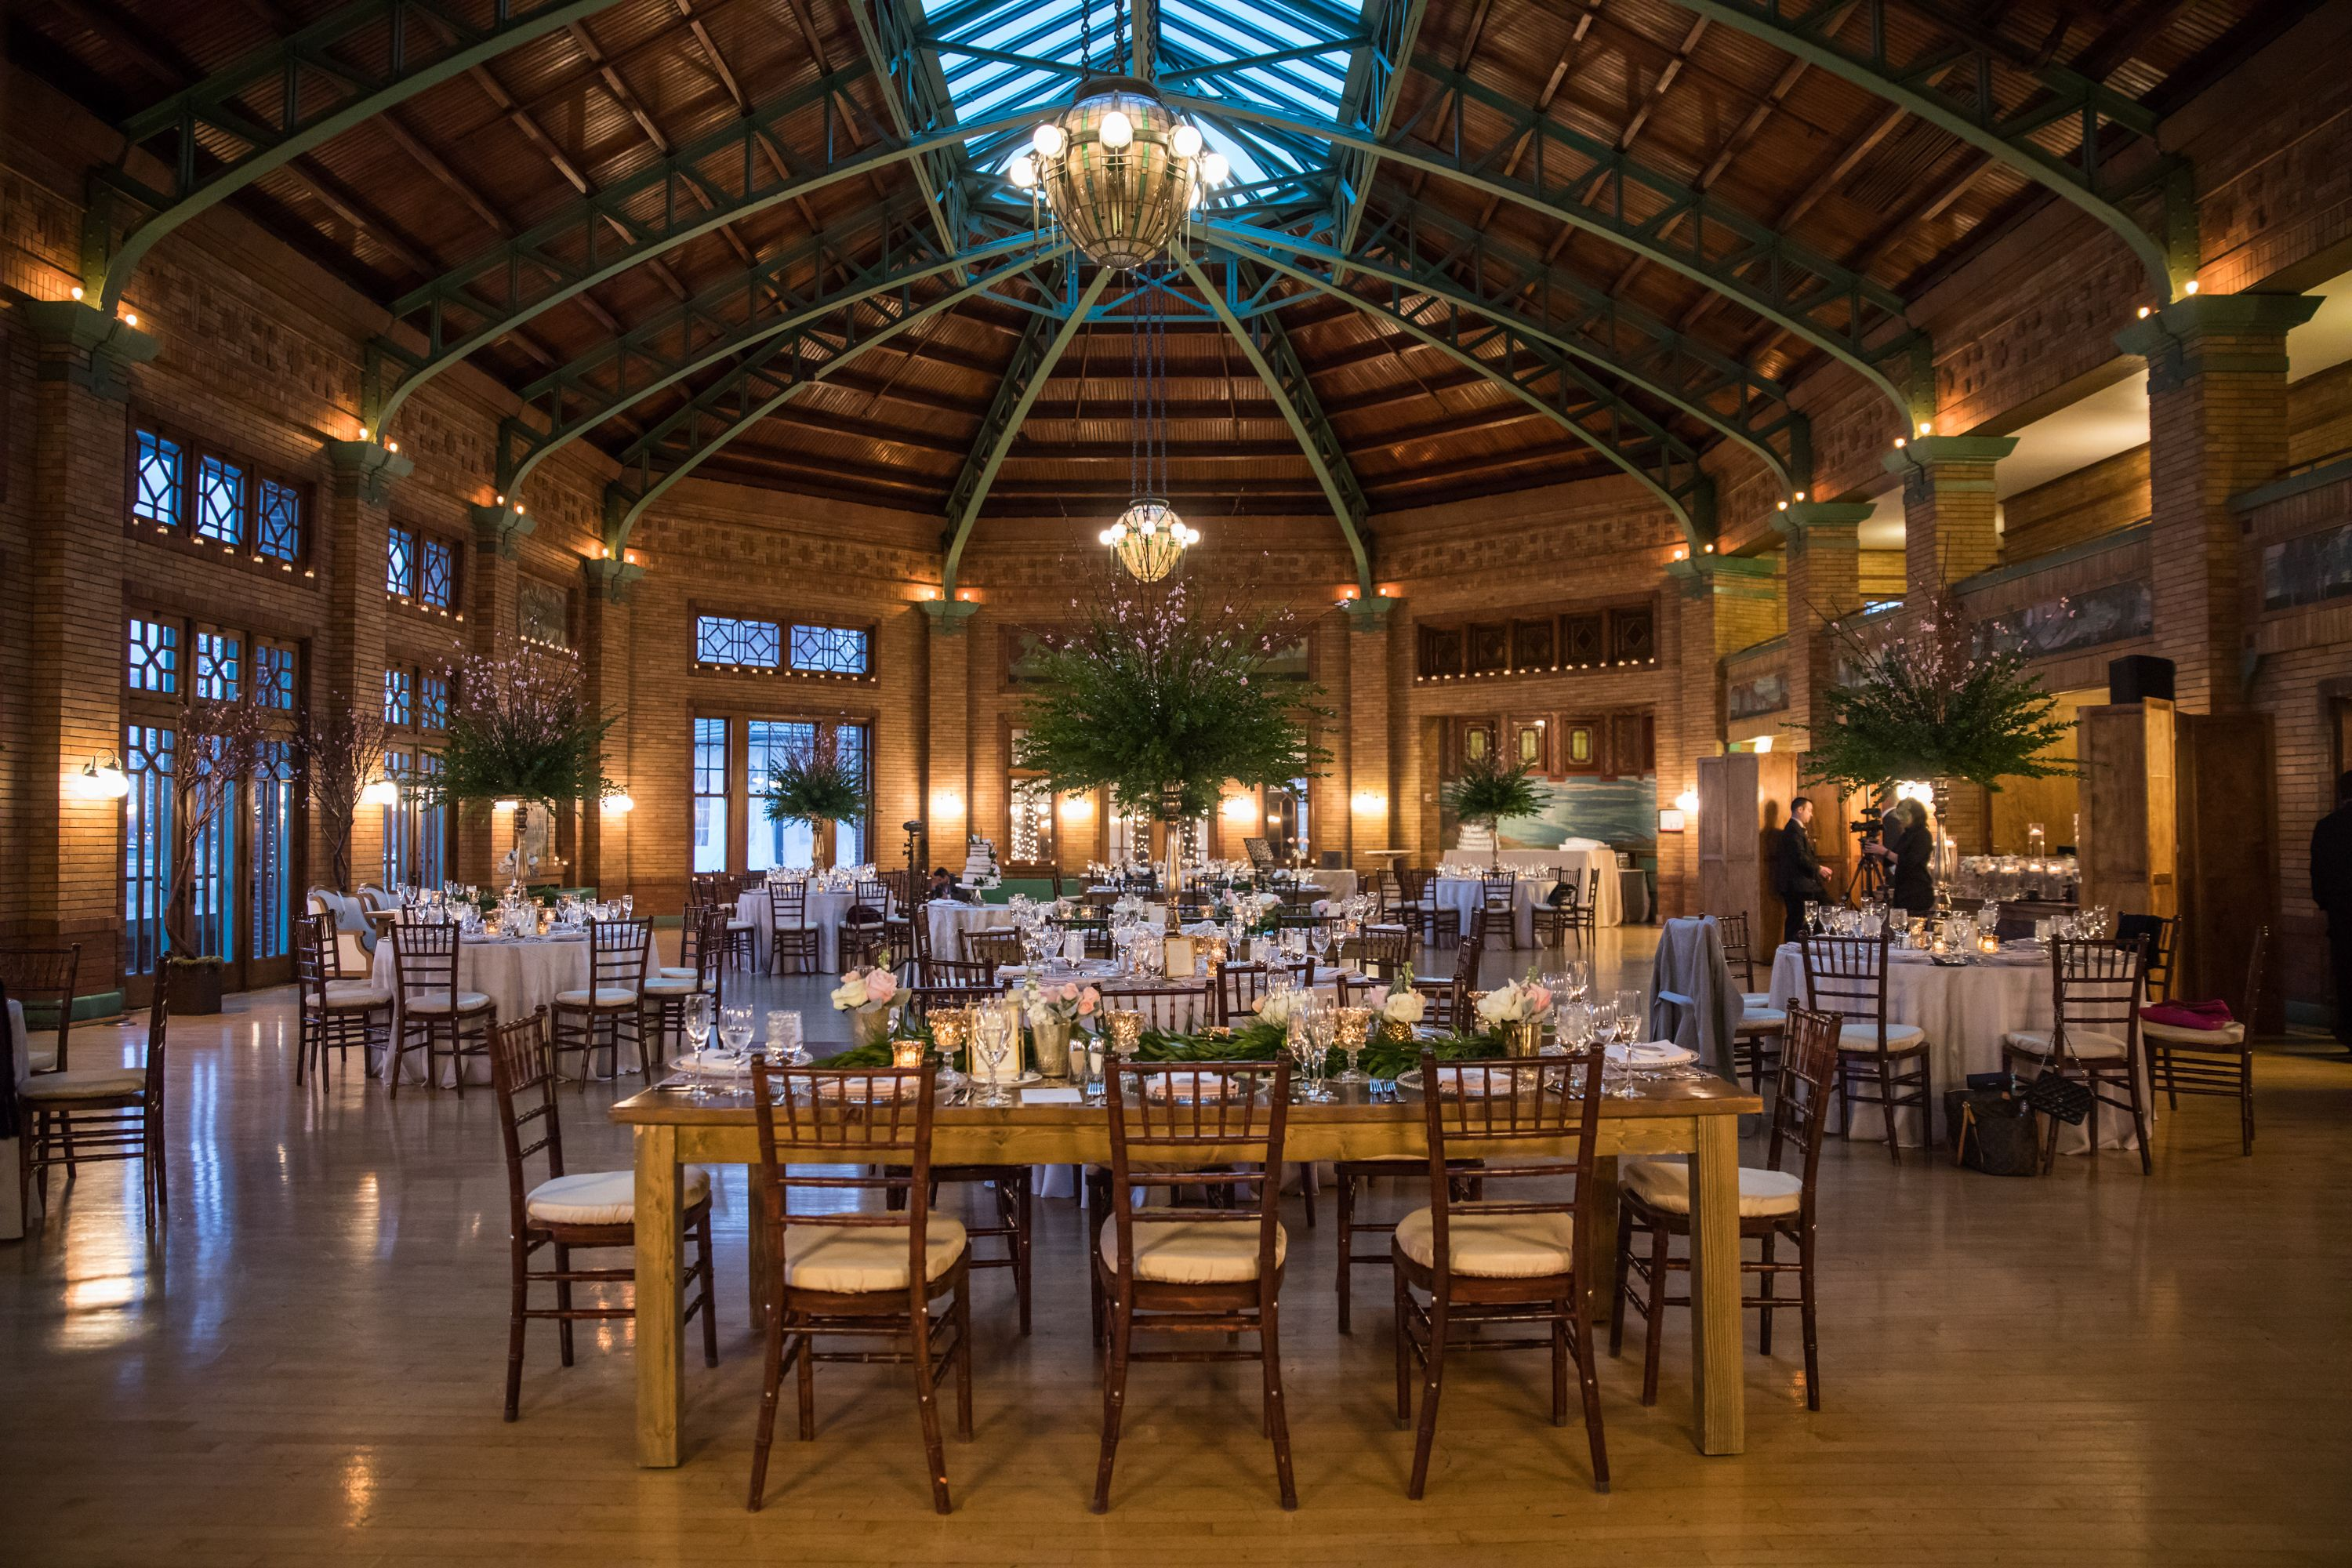 Lori and Ken's Cafe Brauer wedding features a pastel color